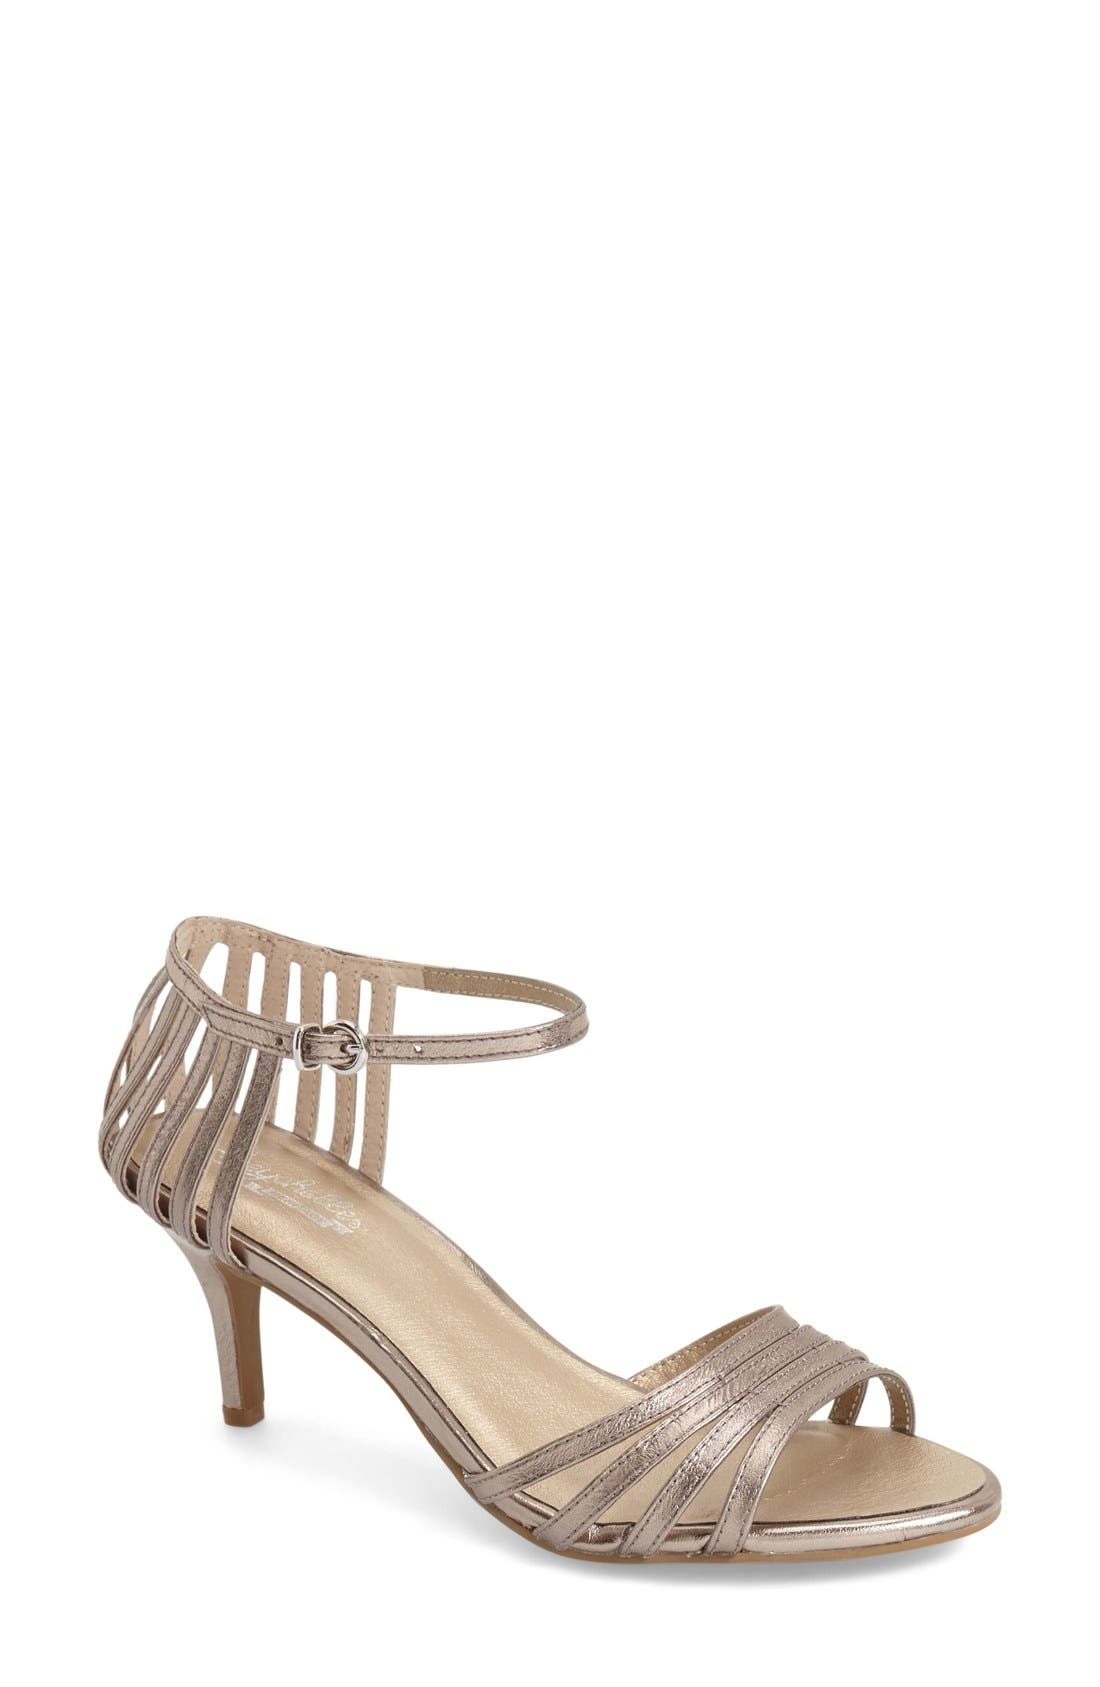 'Song and Dance' Ankle Strap Pump,                             Main thumbnail 1, color,